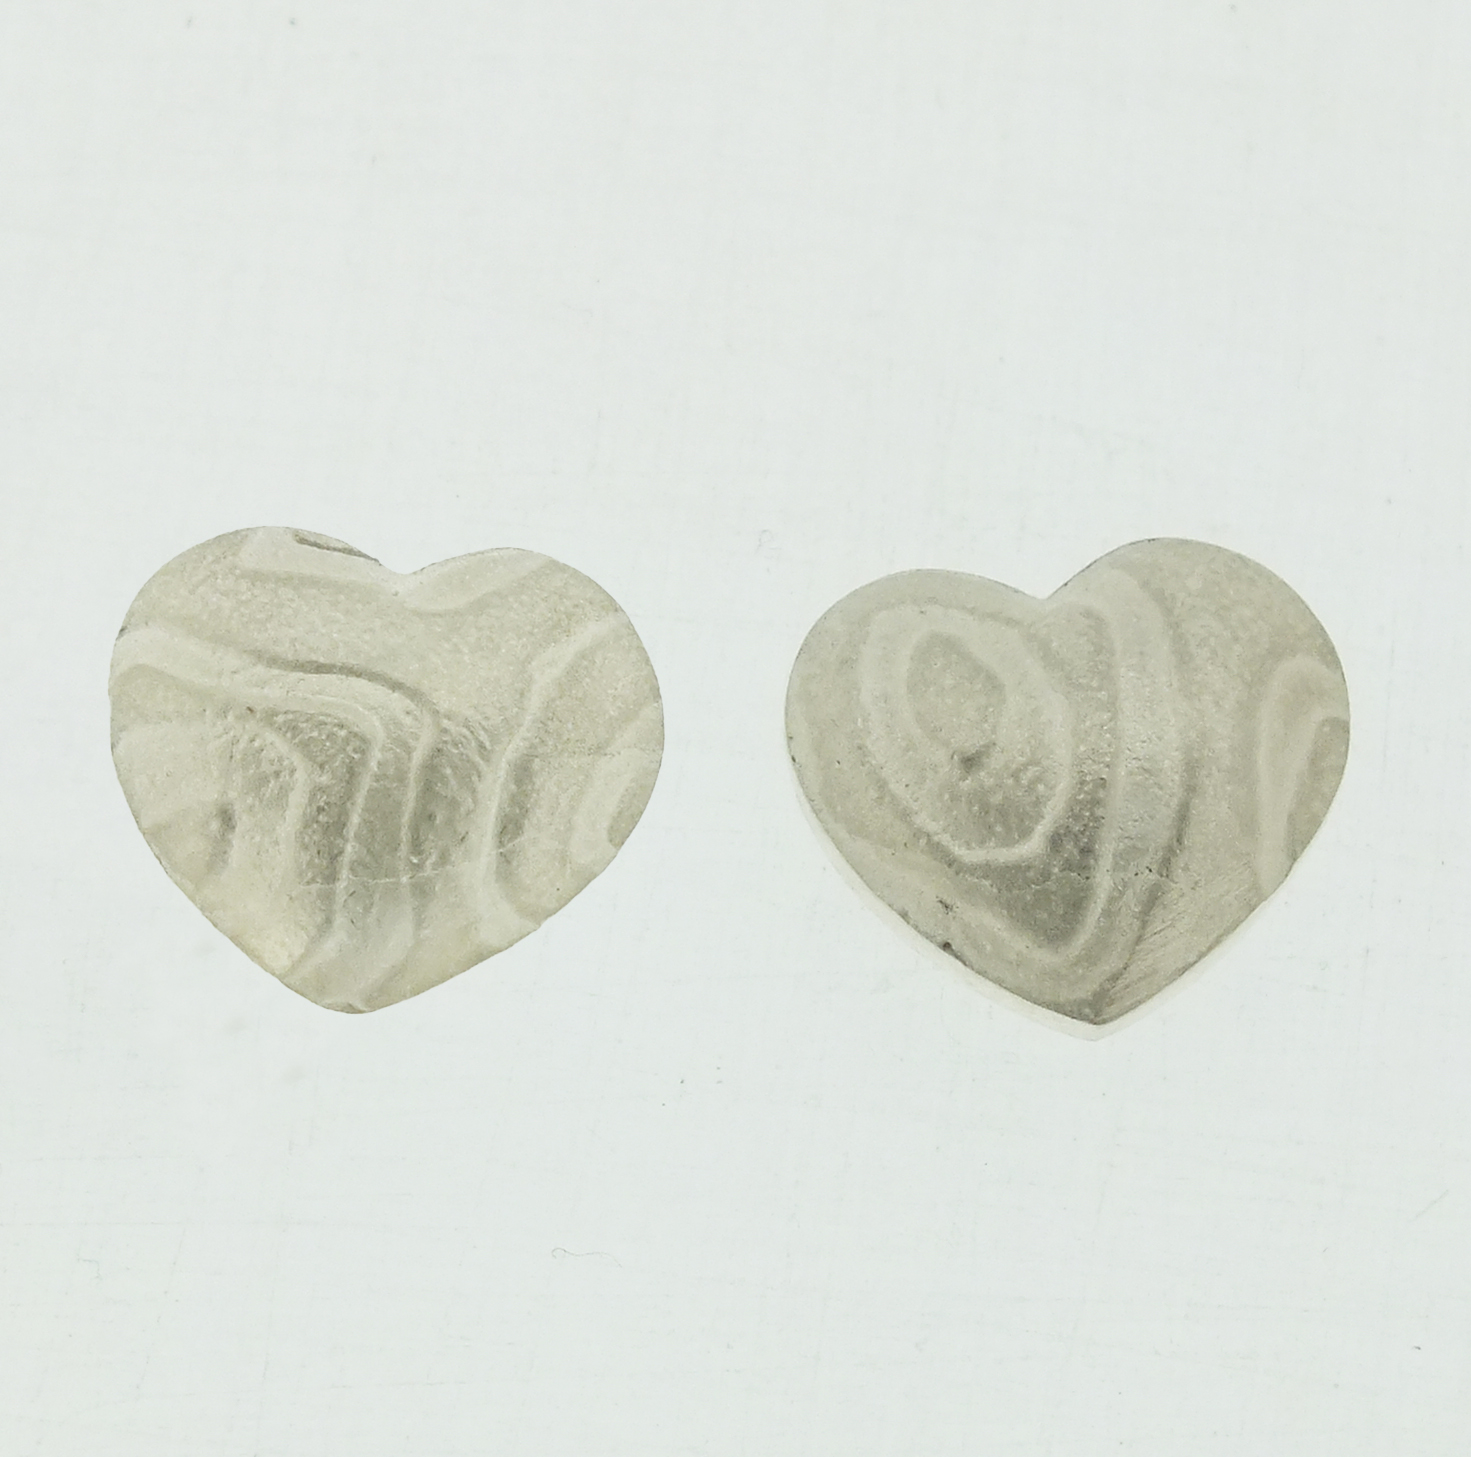 Kimono pattern Heart stud silver earrings